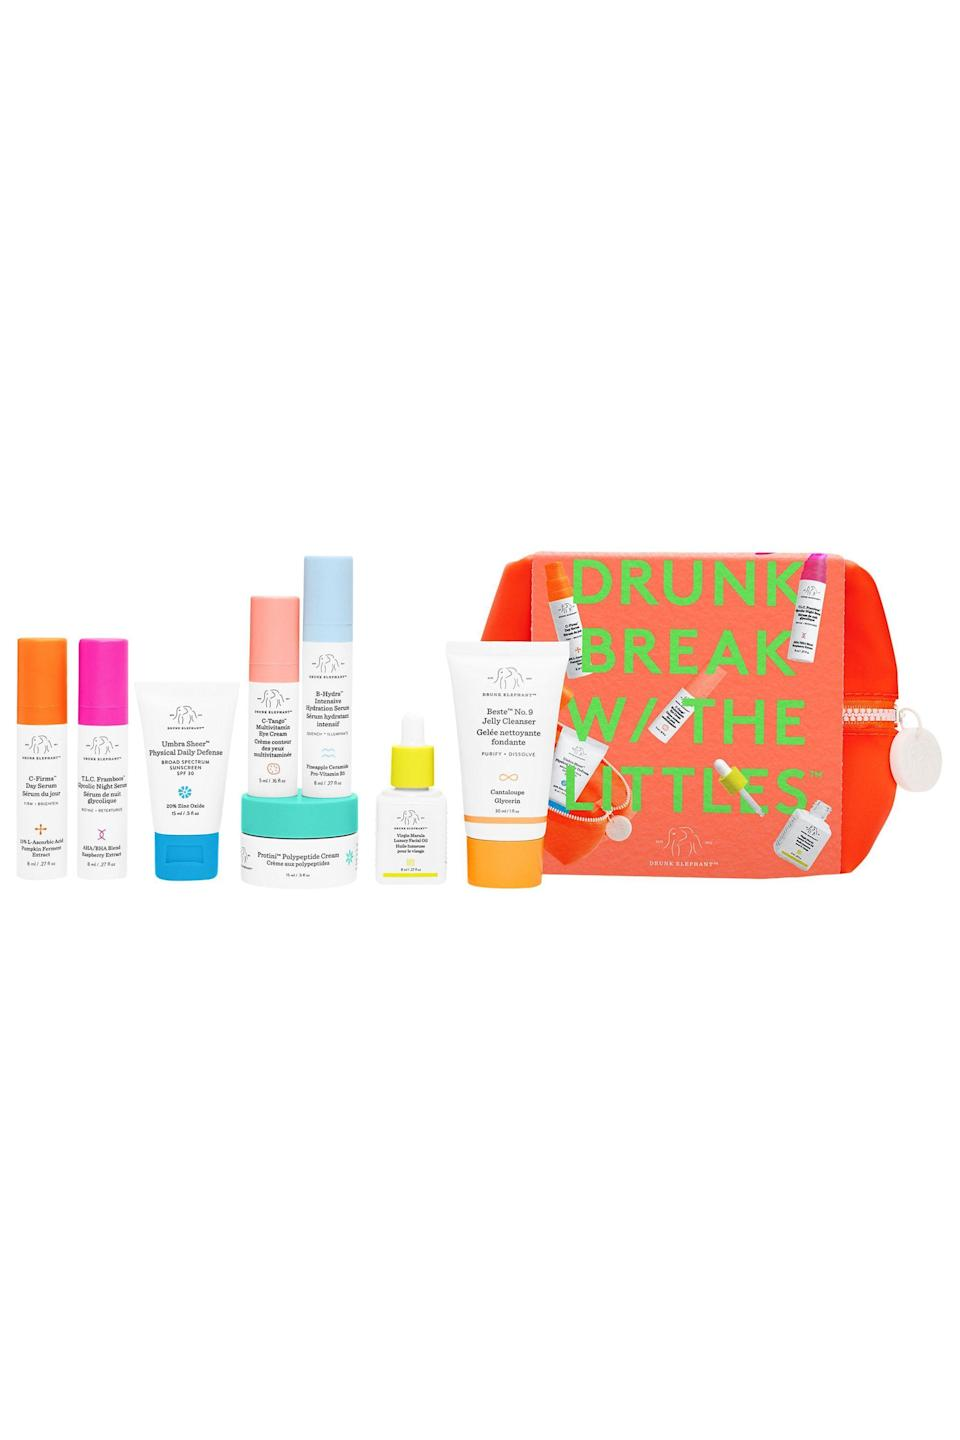 """<p><strong>Drunk Elephant</strong></p><p>sephora.com</p><p><strong>$90.00</strong></p><p><a href=""""https://go.redirectingat.com?id=74968X1596630&url=https%3A%2F%2Fwww.sephora.com%2Fproduct%2Fdrunk-elephant-the-littles-set-P455246&sref=https%3A%2F%2Fwww.elle.com%2Fbeauty%2Fmakeup-skin-care%2Fg33433197%2Fbest-skin-care-sets%2F"""" rel=""""nofollow noopener"""" target=""""_blank"""" data-ylk=""""slk:Shop Now"""" class=""""link rapid-noclick-resp"""">Shop Now</a></p><p>Everything you need to tackle all of your skin concerns can be found in this chic orange pouch. Drunk Elephant does all the work for you by labeling some of the products for your AM and PM routines and leaves the rest up to you and your skin.</p>"""